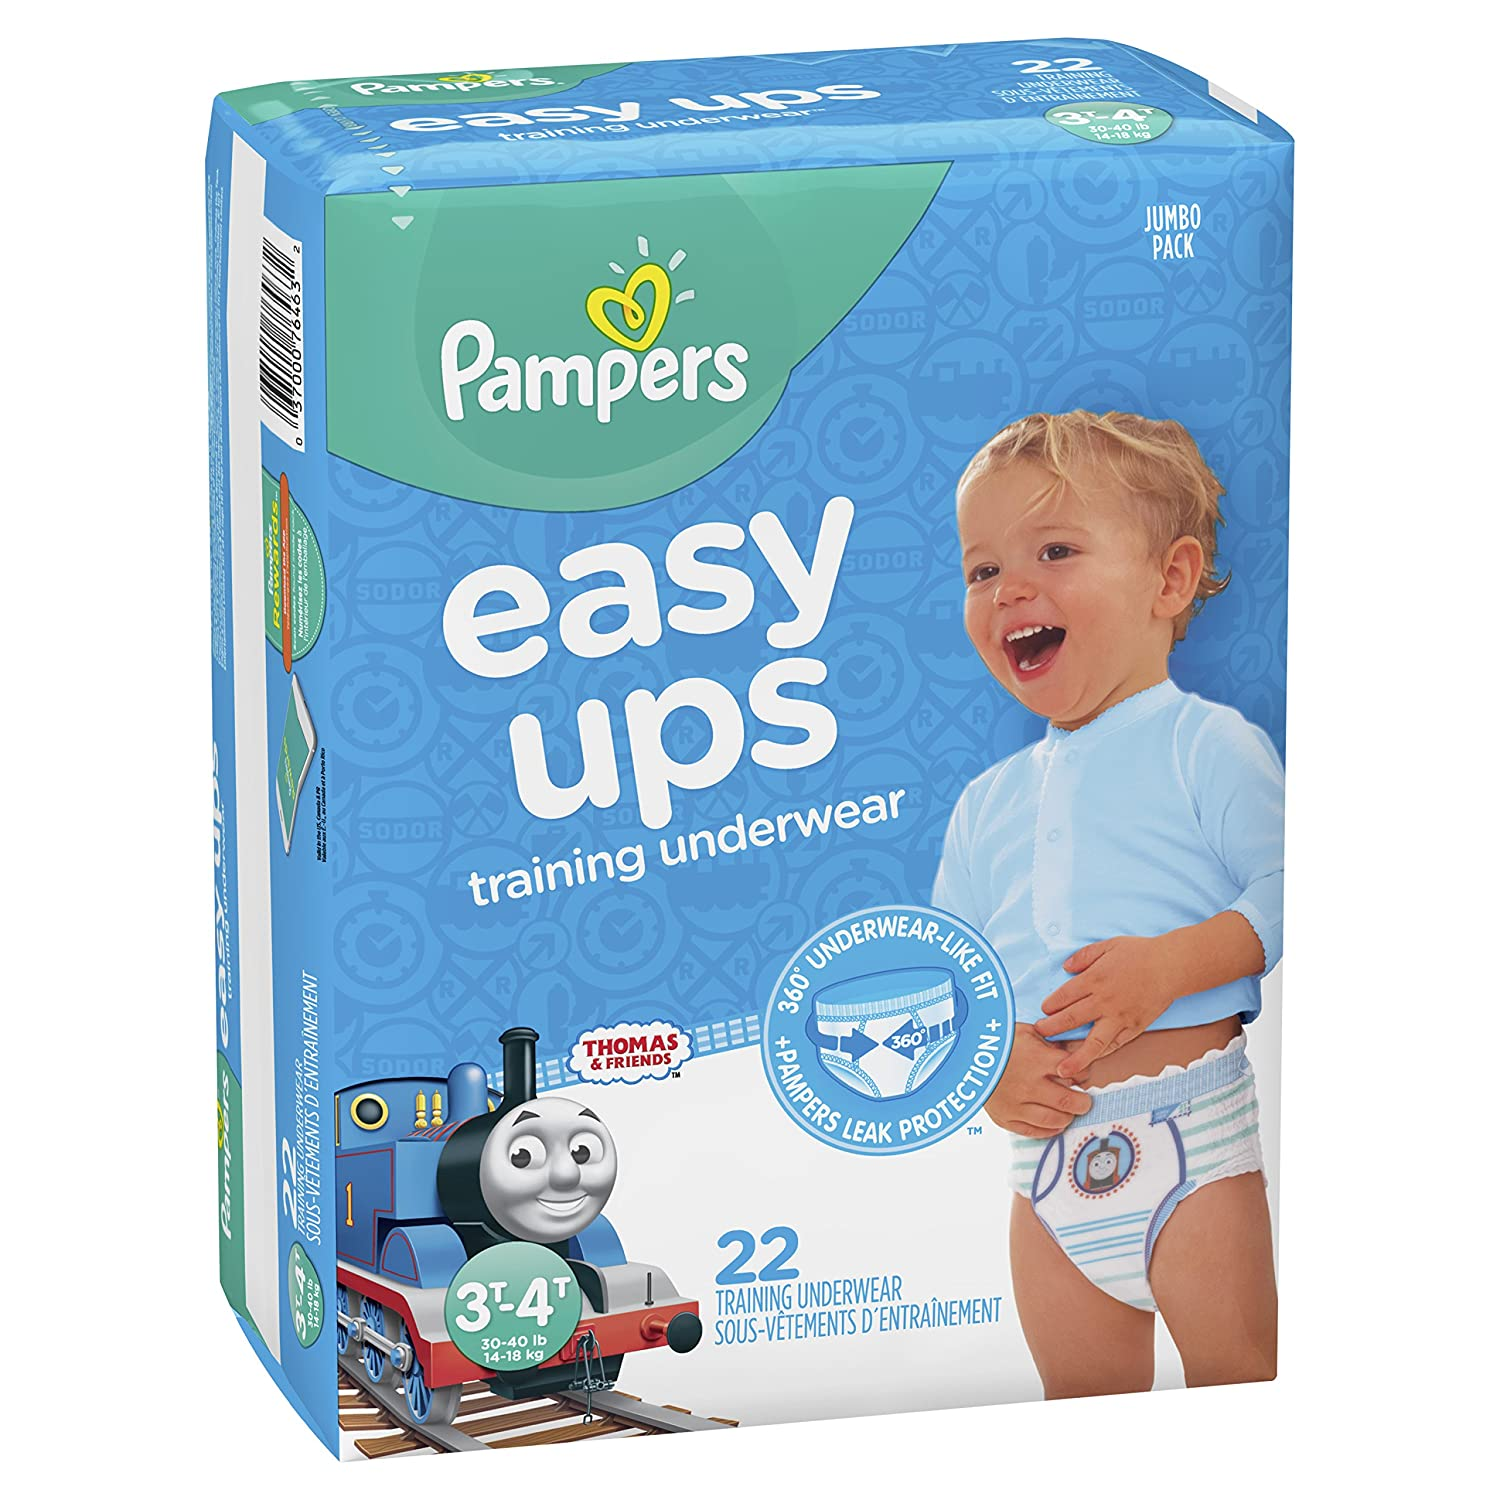 Pampers Easy Ups Pull On Disposable Training Diaper for Boys, Size 4 (2T-3T), Jumbo Pack, 25 Count Procter and Gamble